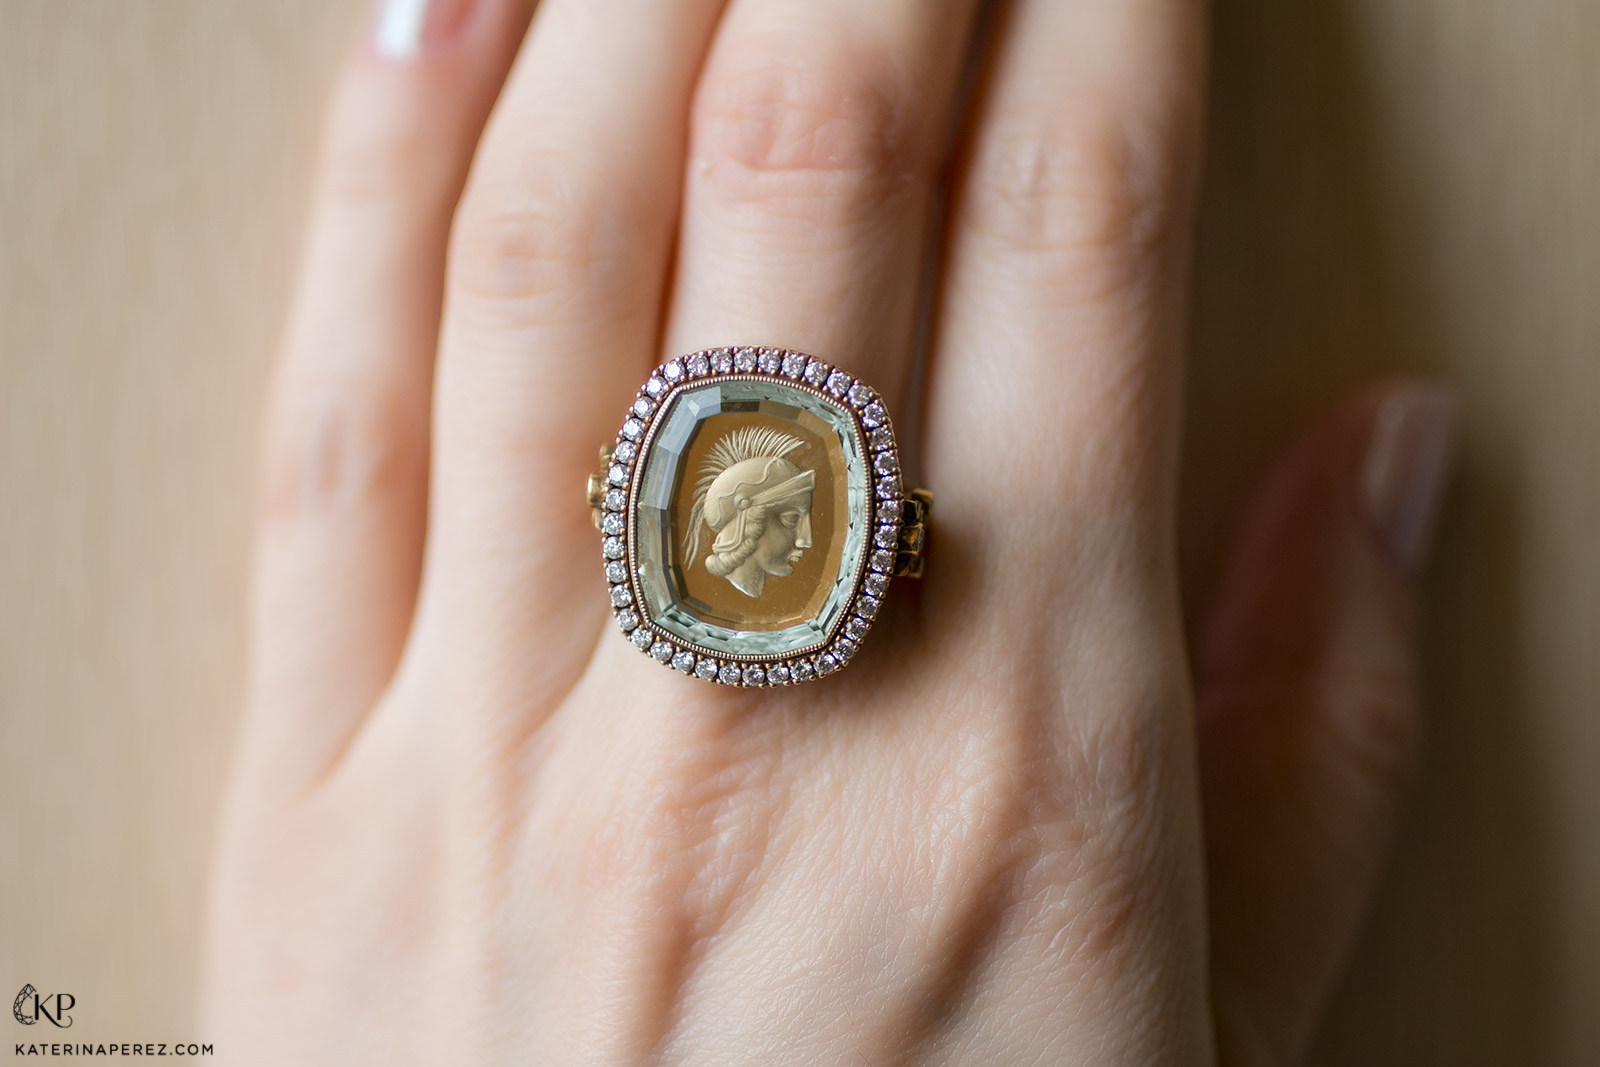 Argentov ring with intaglio